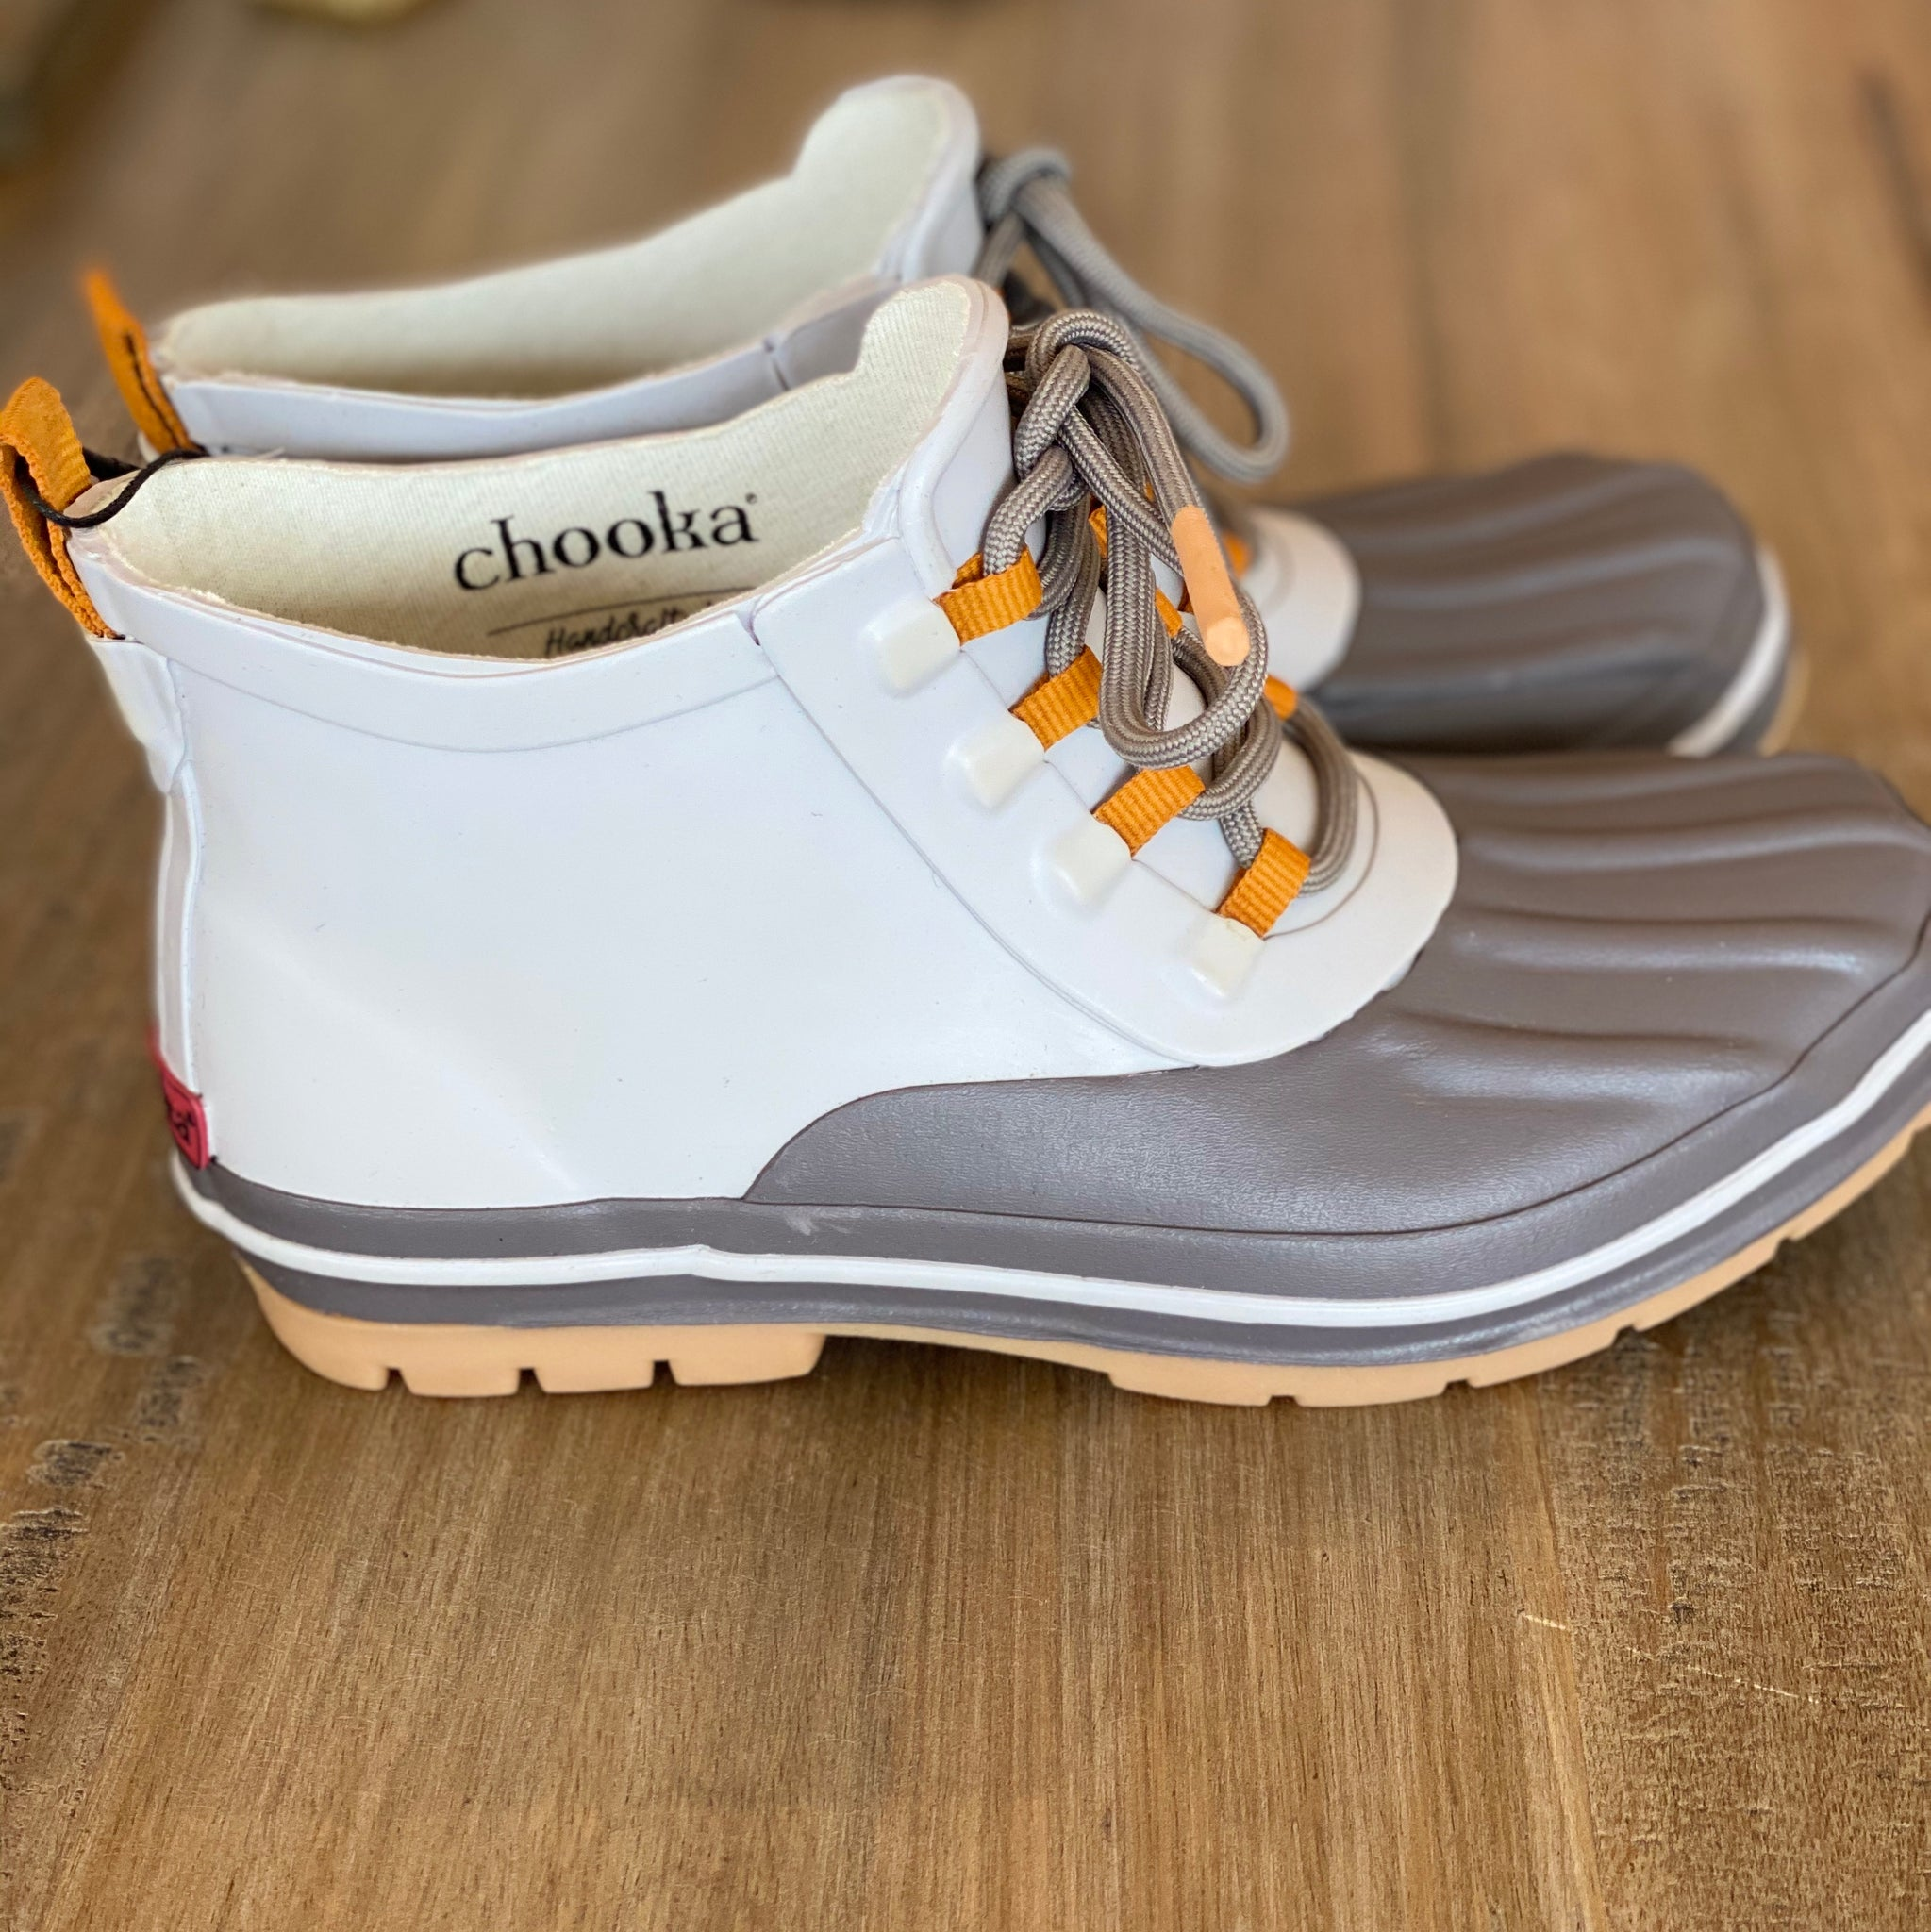 Chooka Rubber Duck Boot - Showroom56